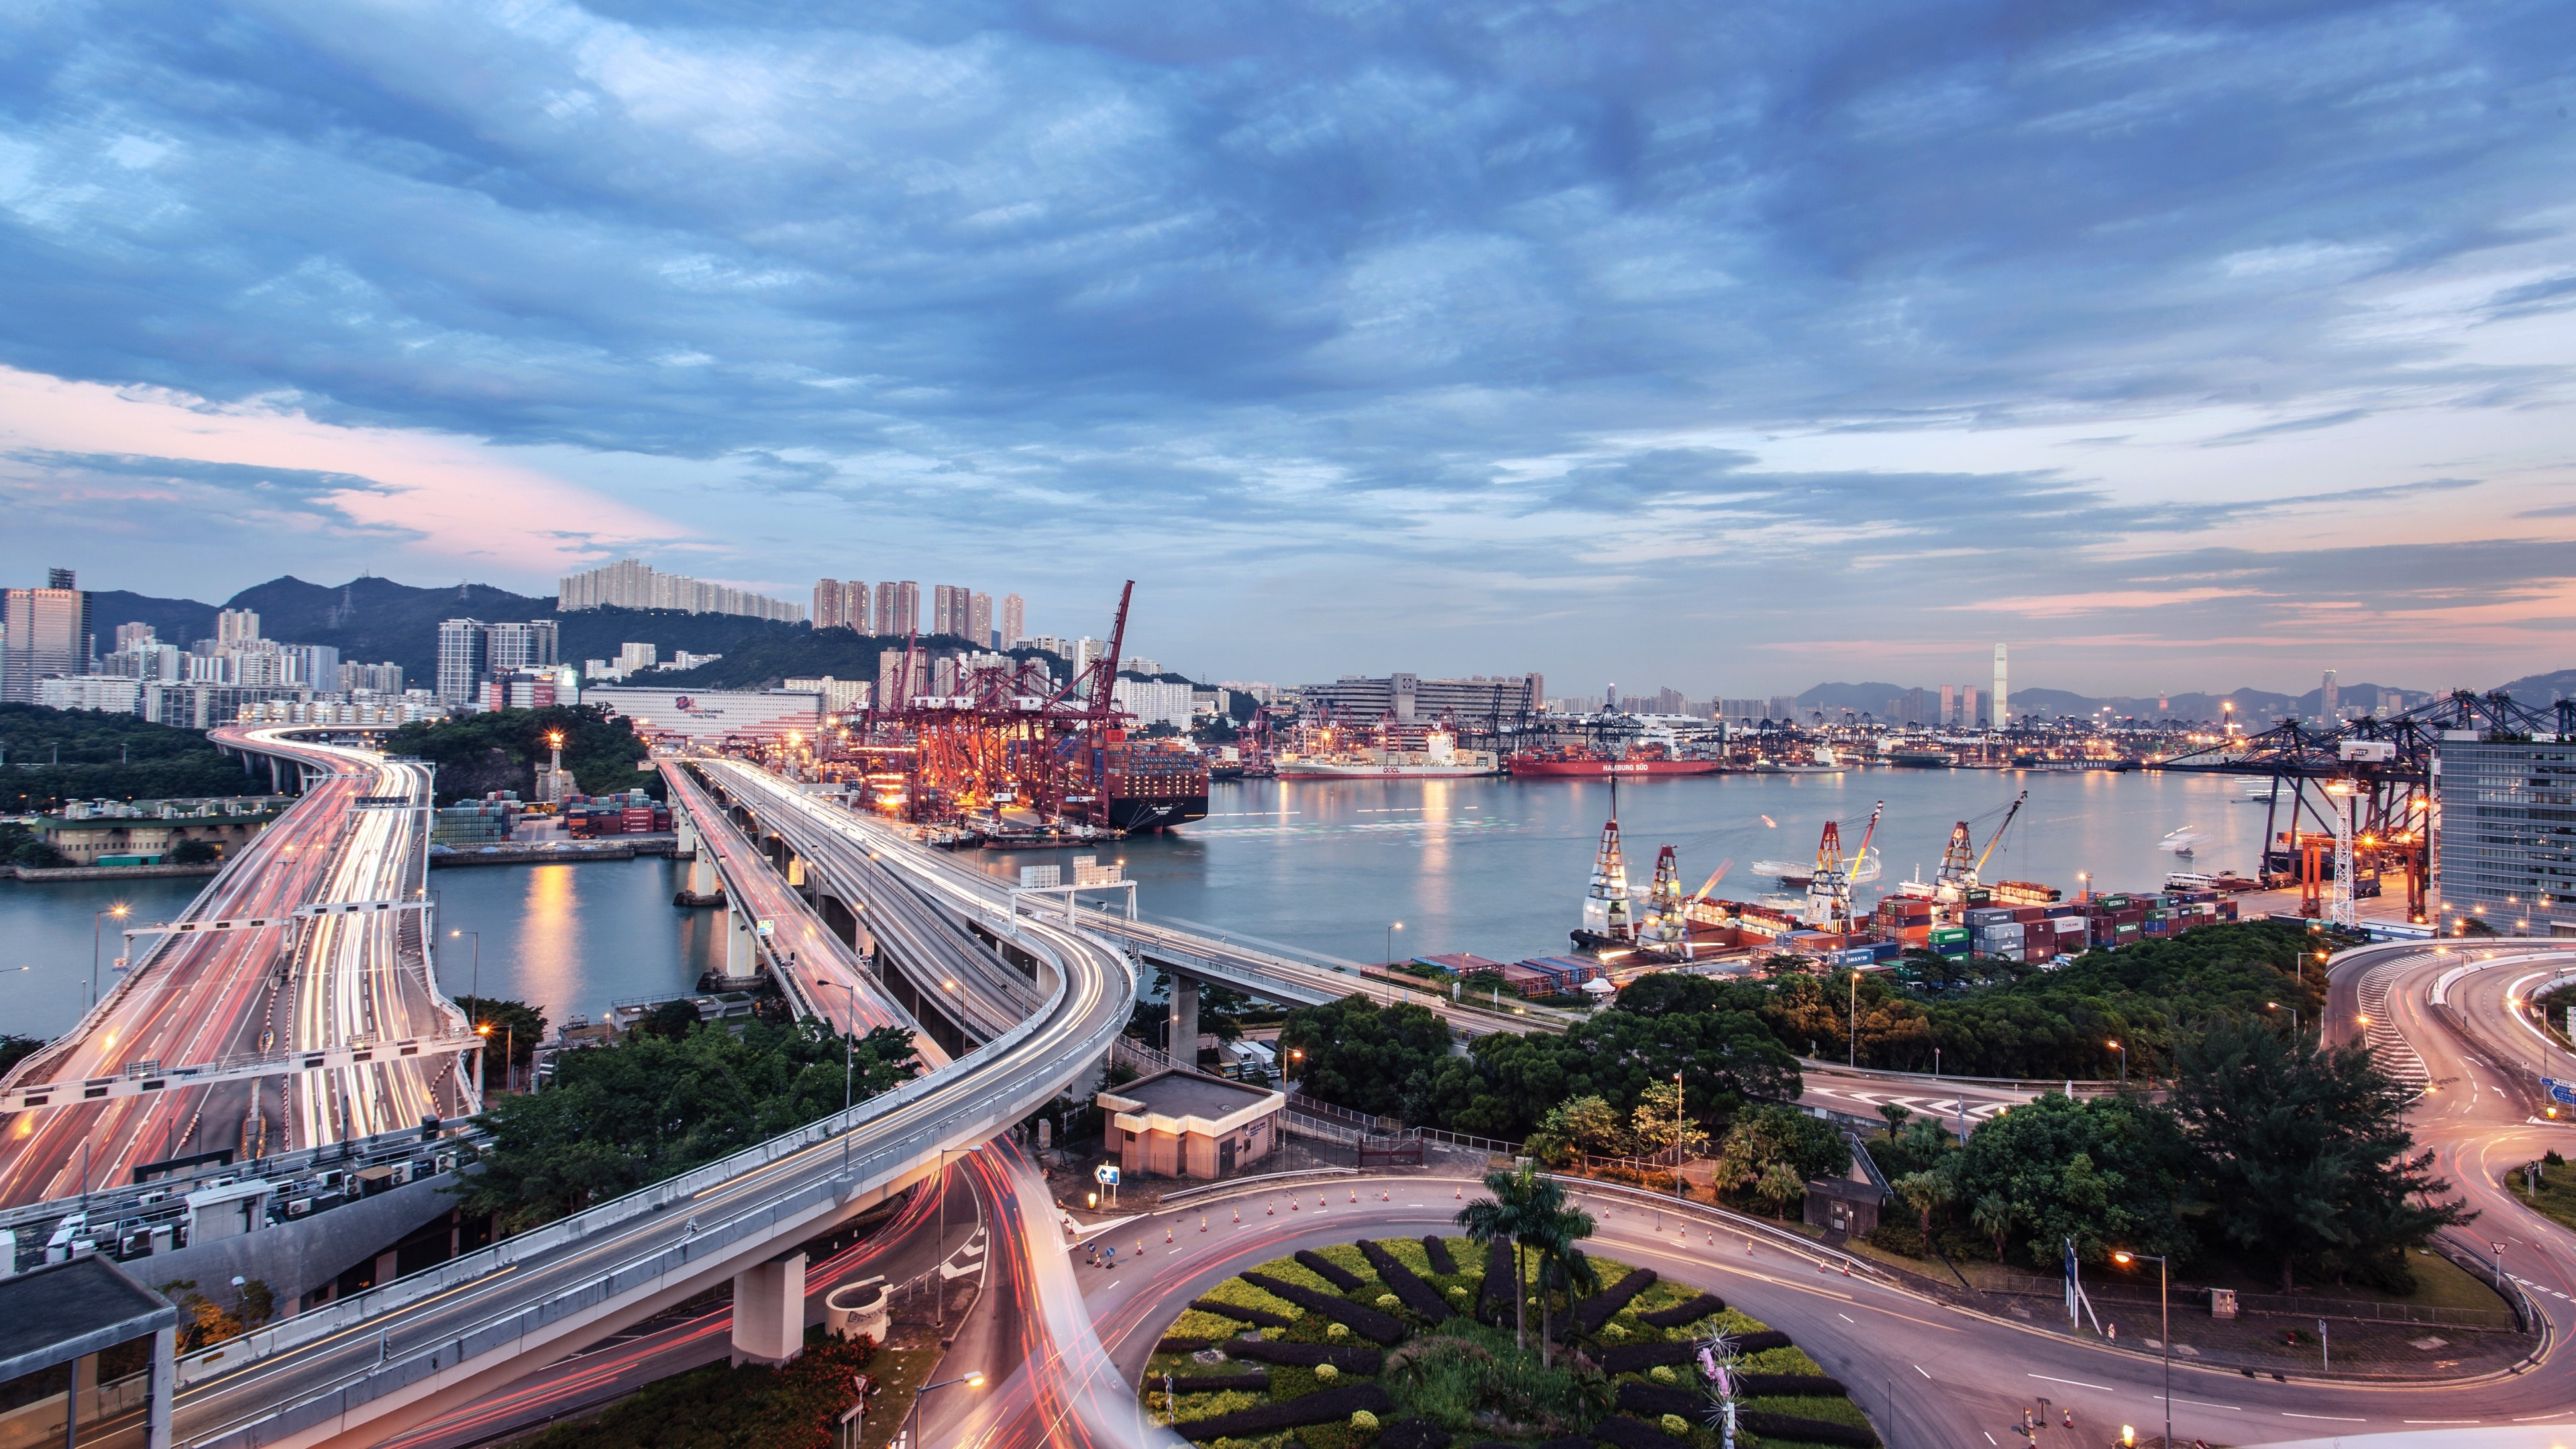 General 3840x2160 architecture building city cityscape clouds river road ship dock lights light trails evening sunset roundabouts trees container ship container cranes (machine) long exposure street Hong Kong